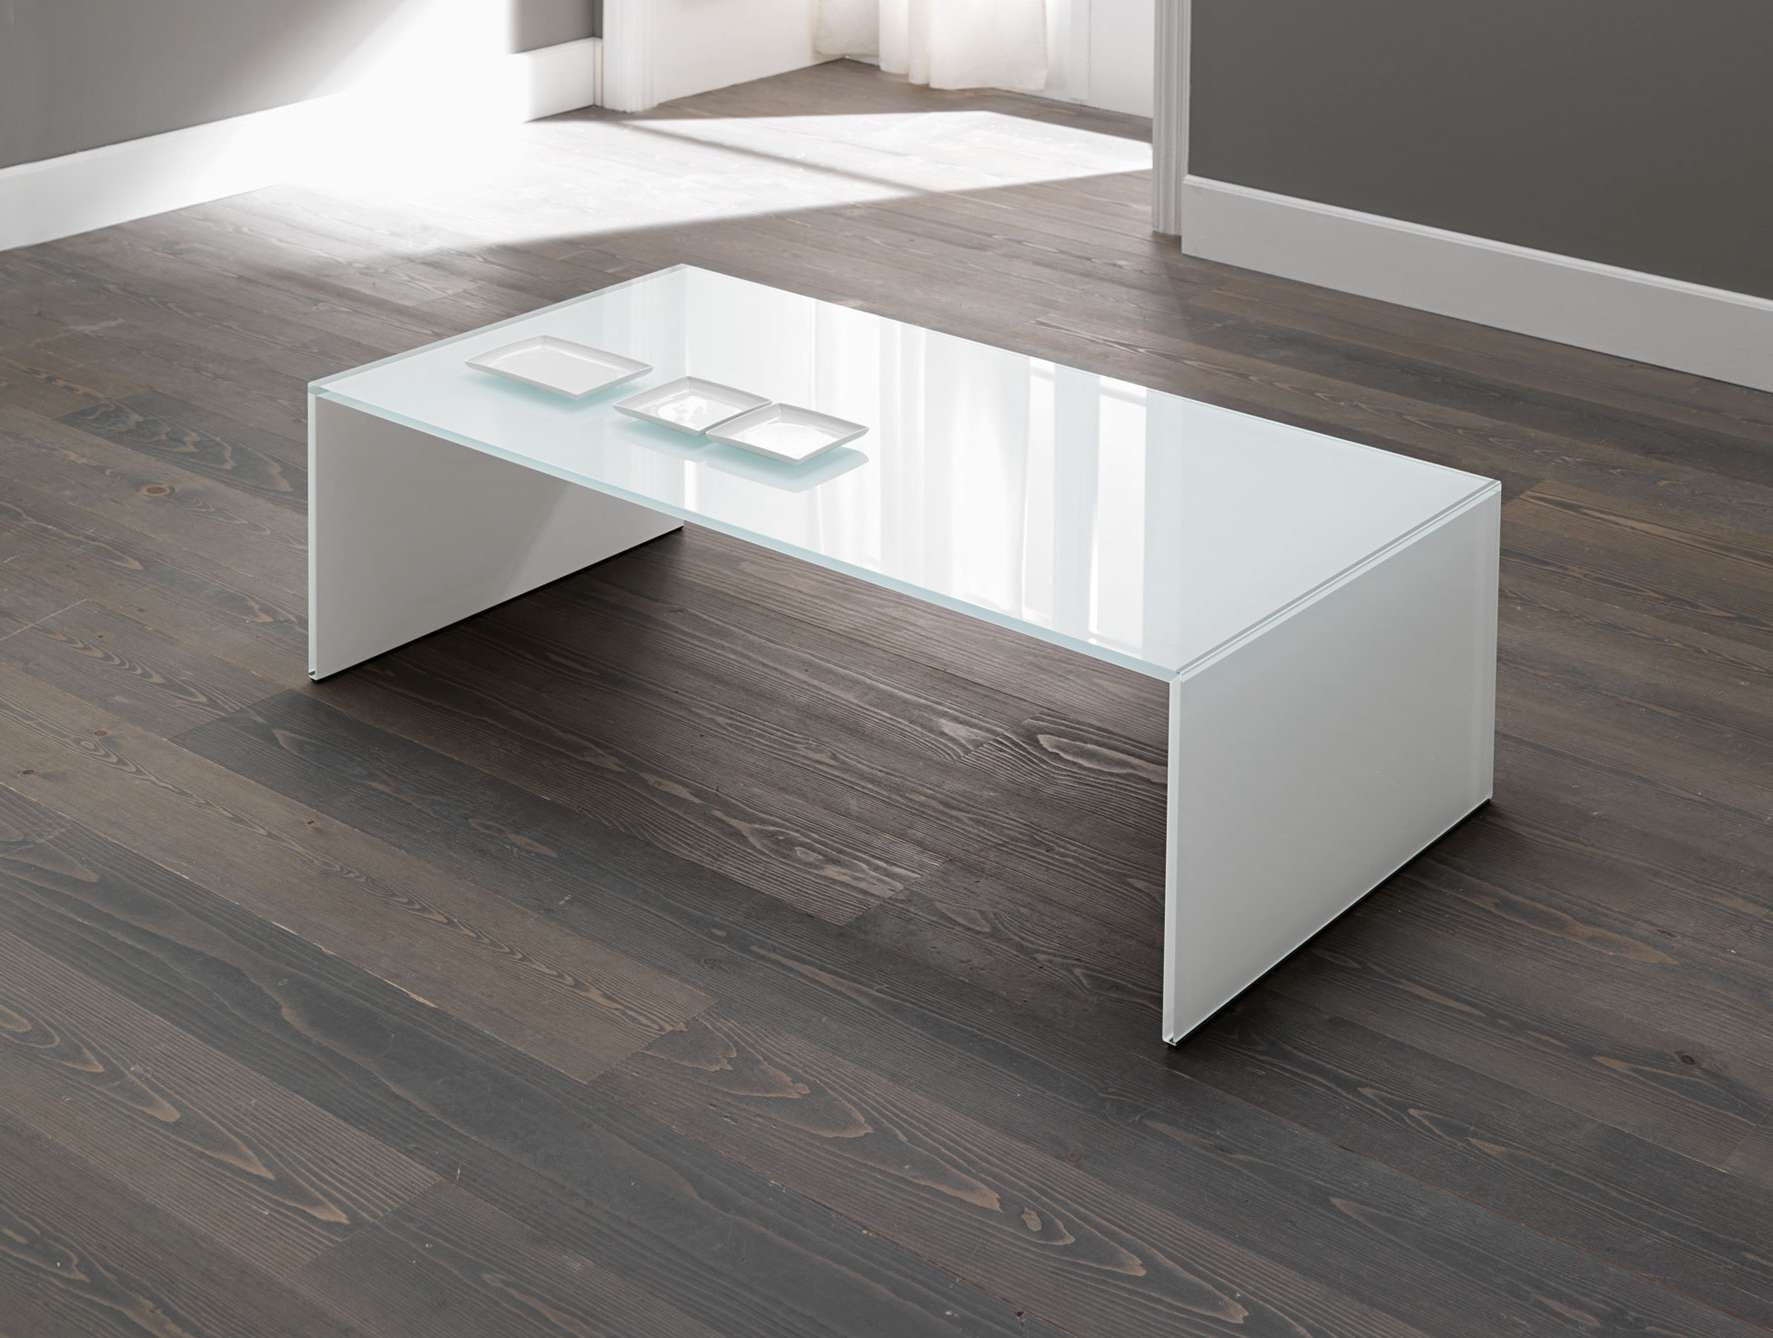 Widely Used White Wood And Glass Coffee Tables With Regard To Coffee Table, Simple Design Modern Coffee Table Featuring (View 20 of 20)